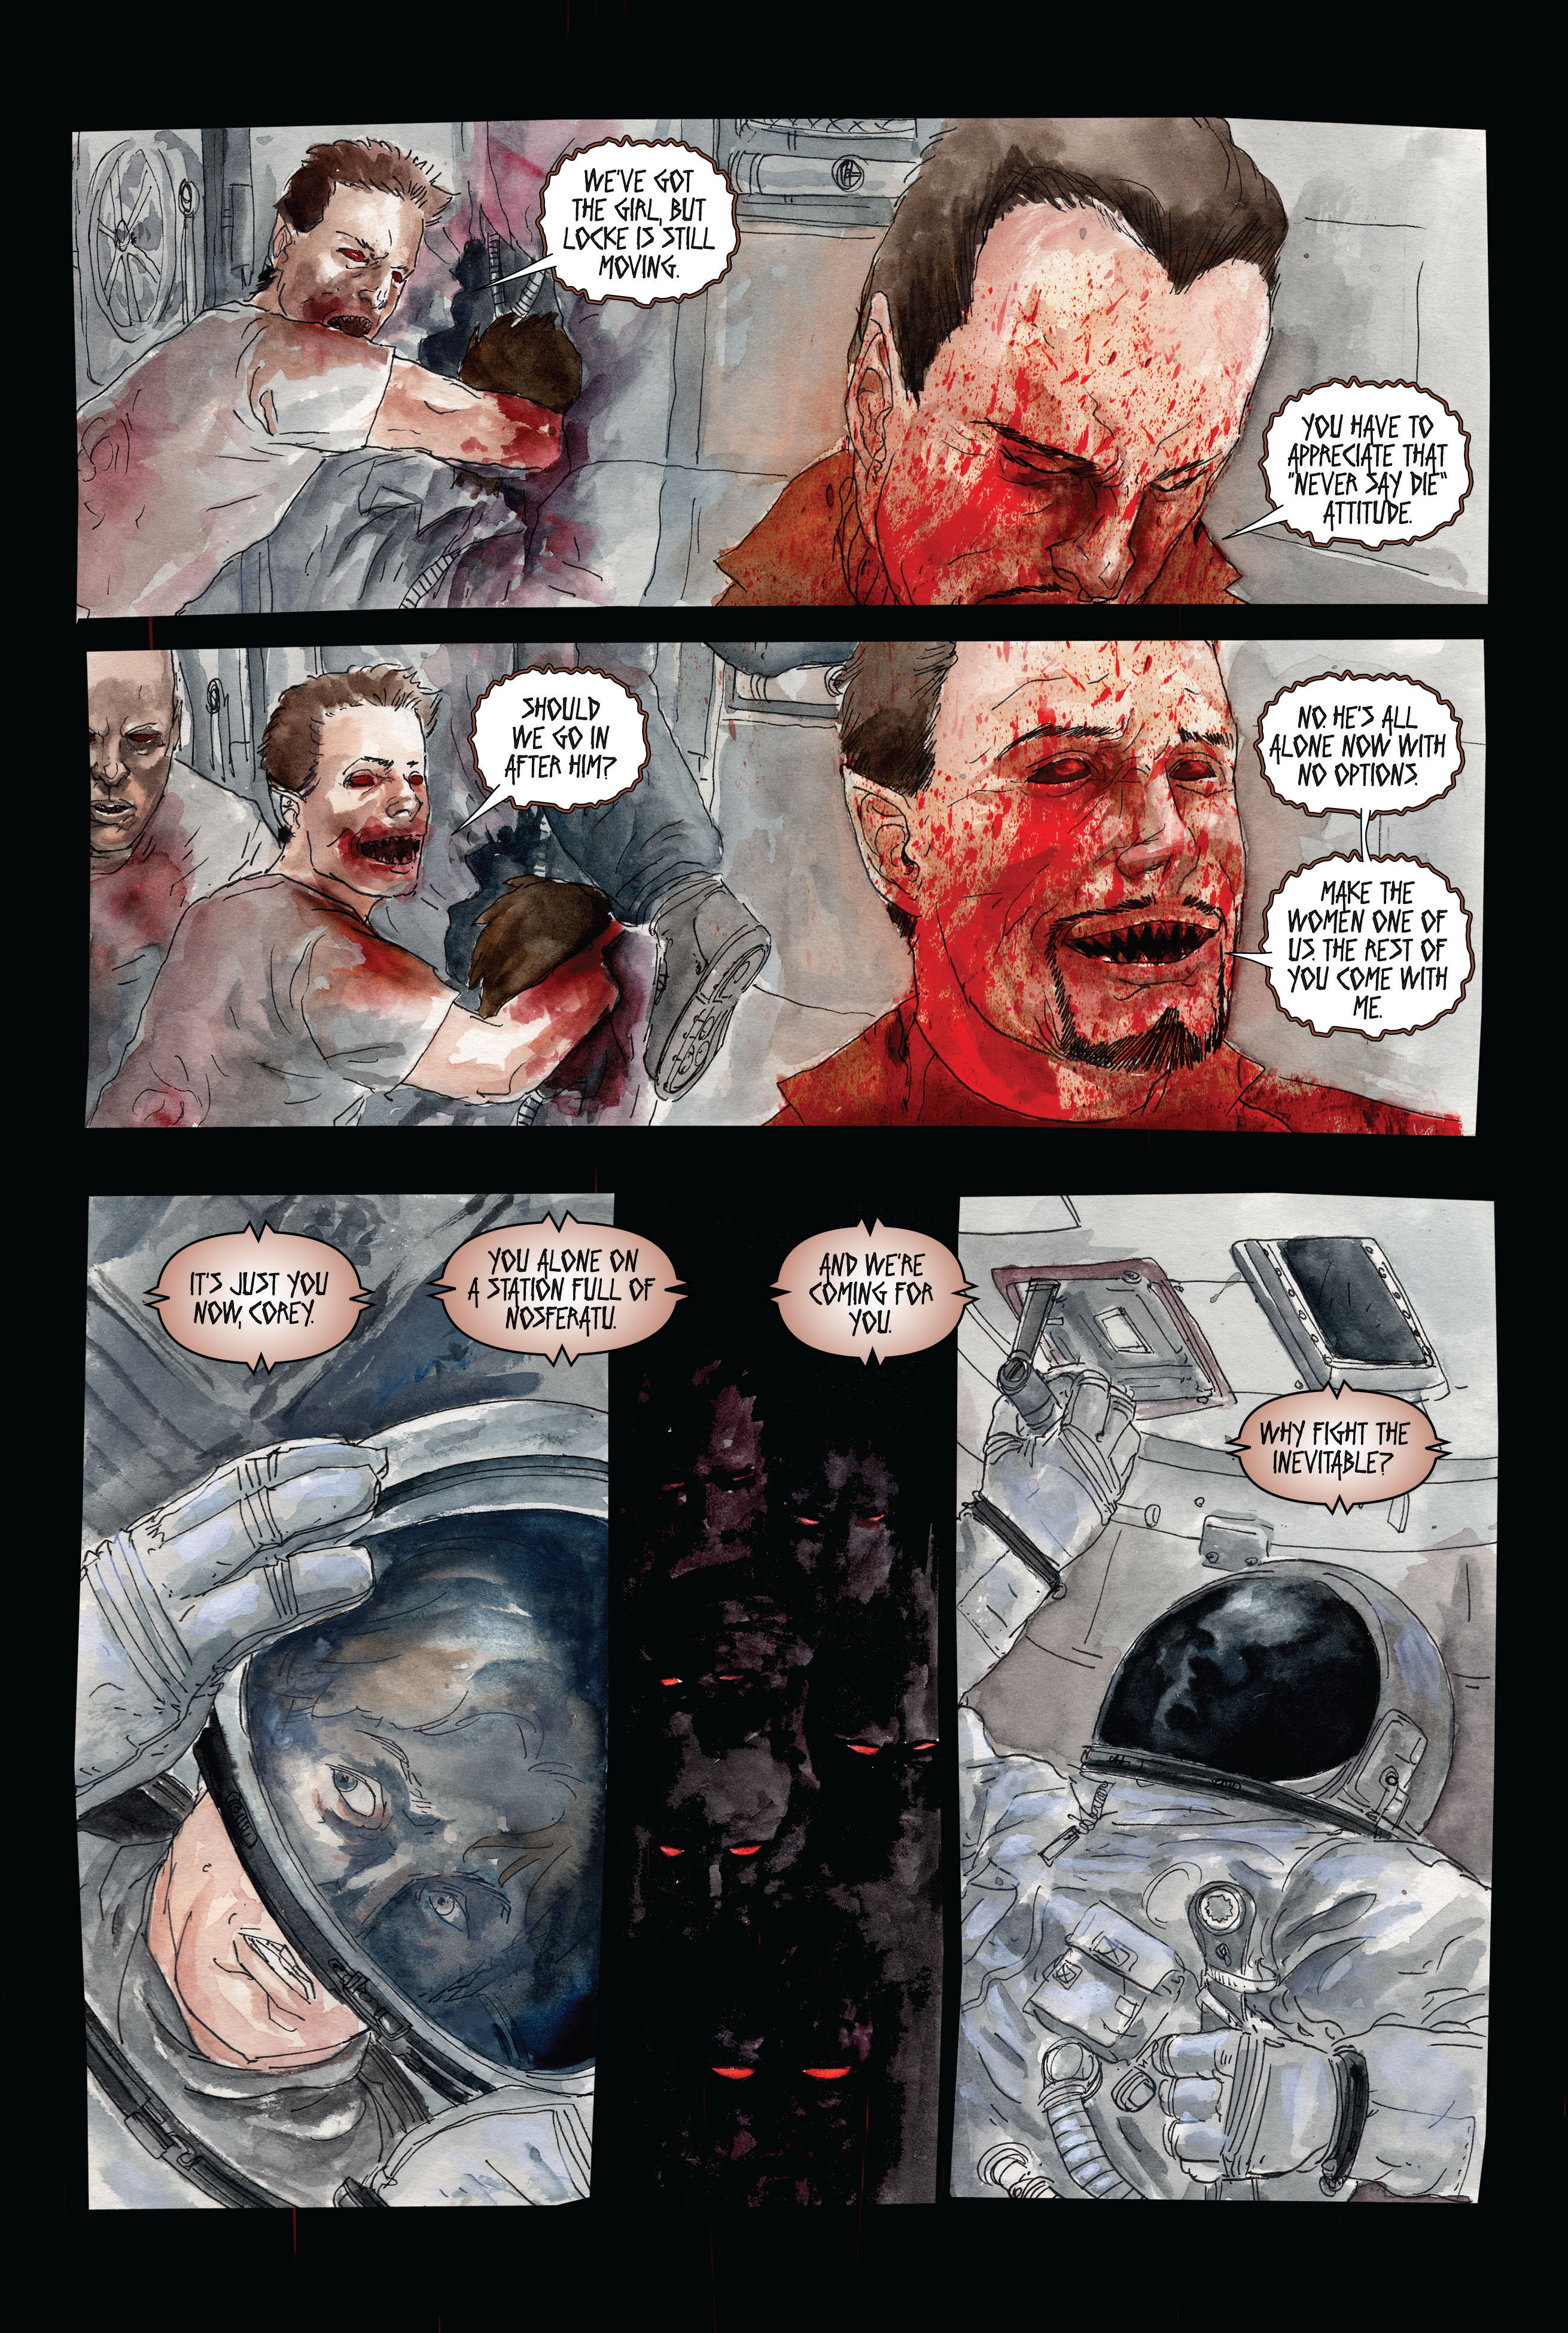 30 Days of Night: Dead Space 3 Page 10